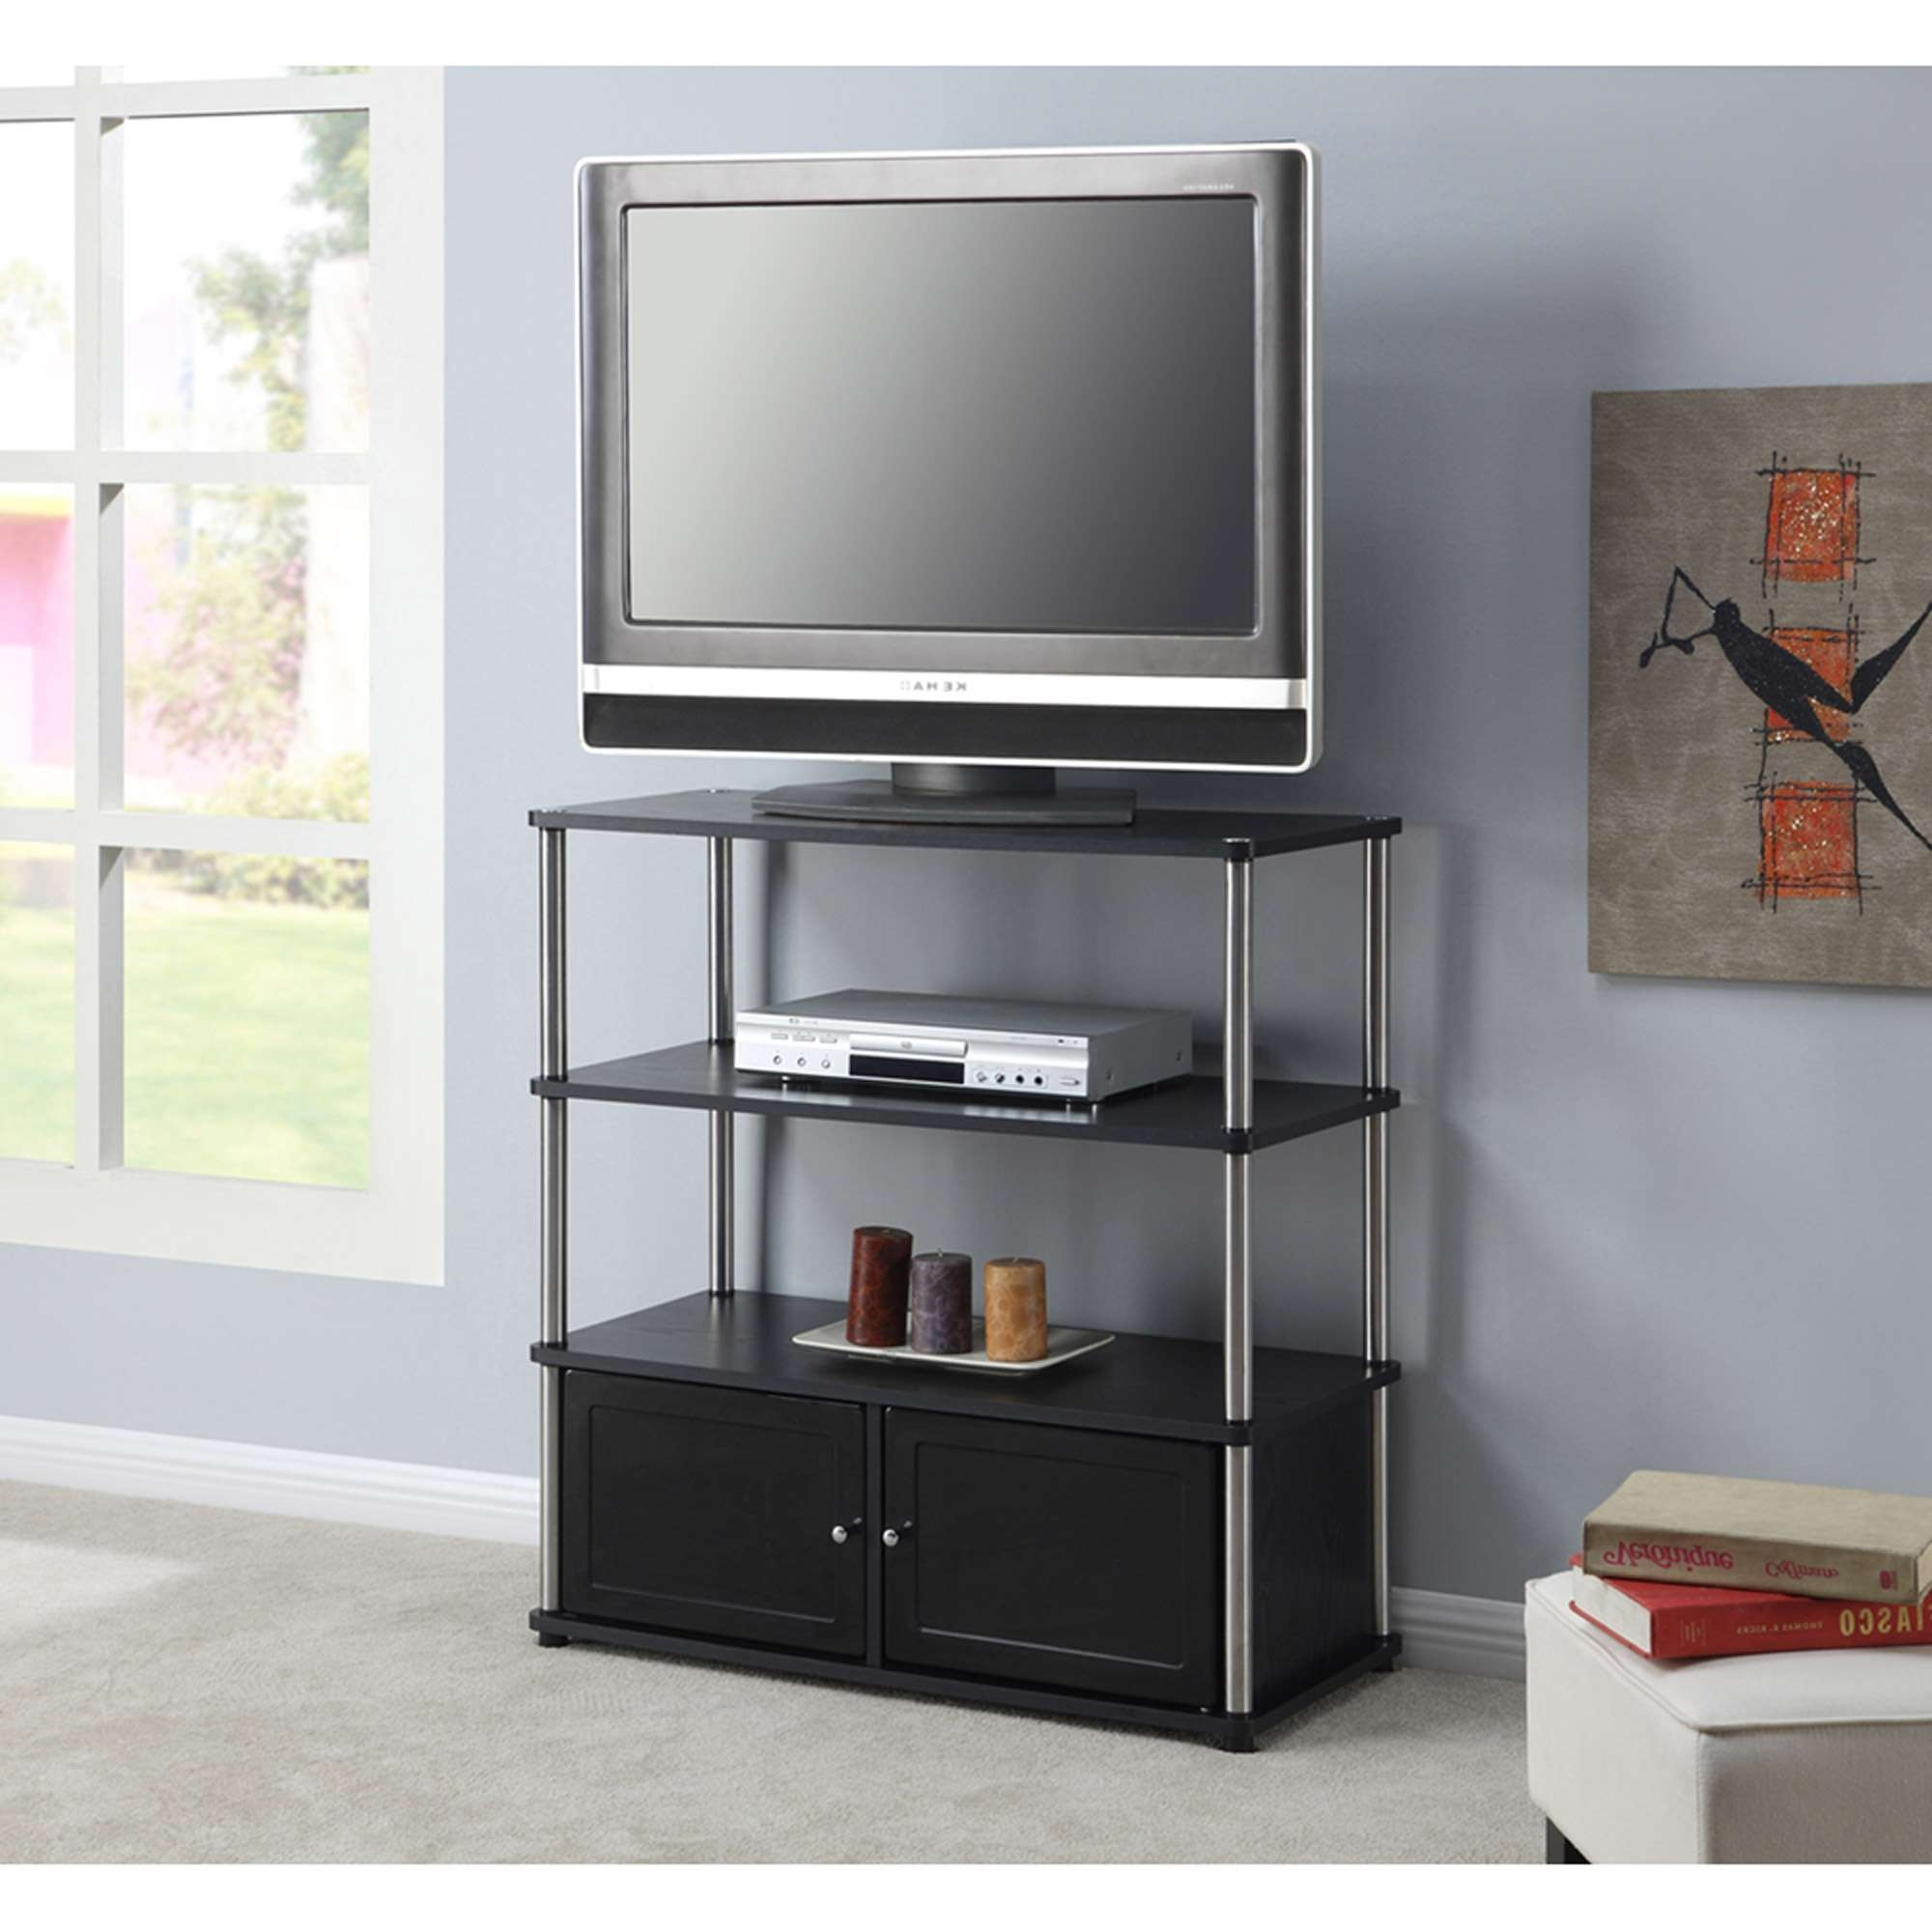 Tv Stands Inspiring Stand With Mount And Drawers Design Altra Throughout Tall Tv Stands For Flat Screen (View 13 of 15)